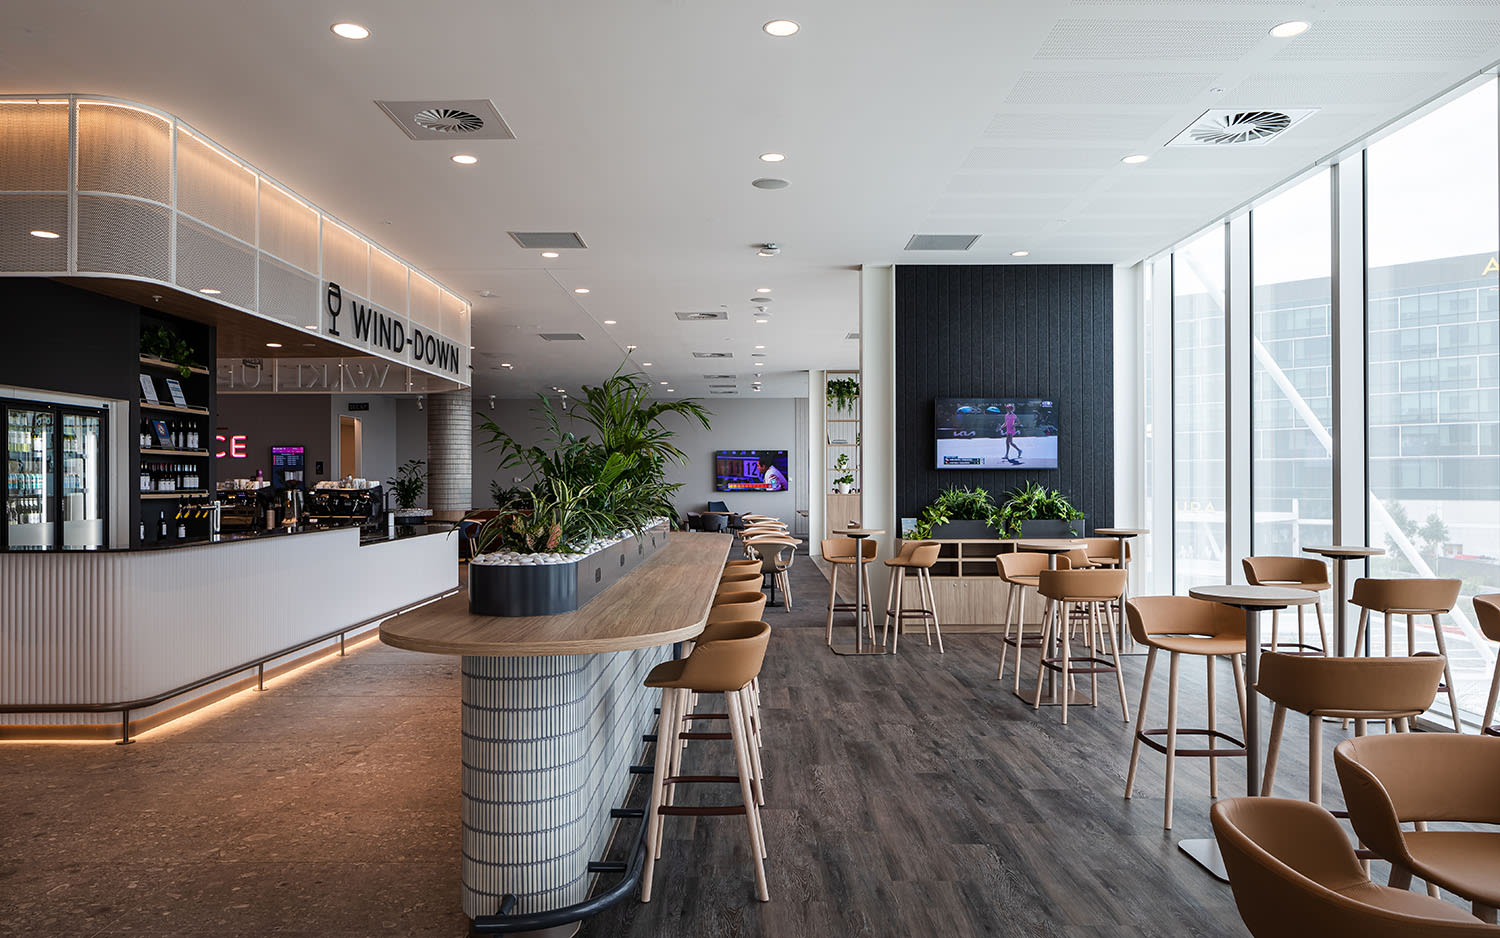 The coffee bar at Virgin Australia's Adelaide Lounge